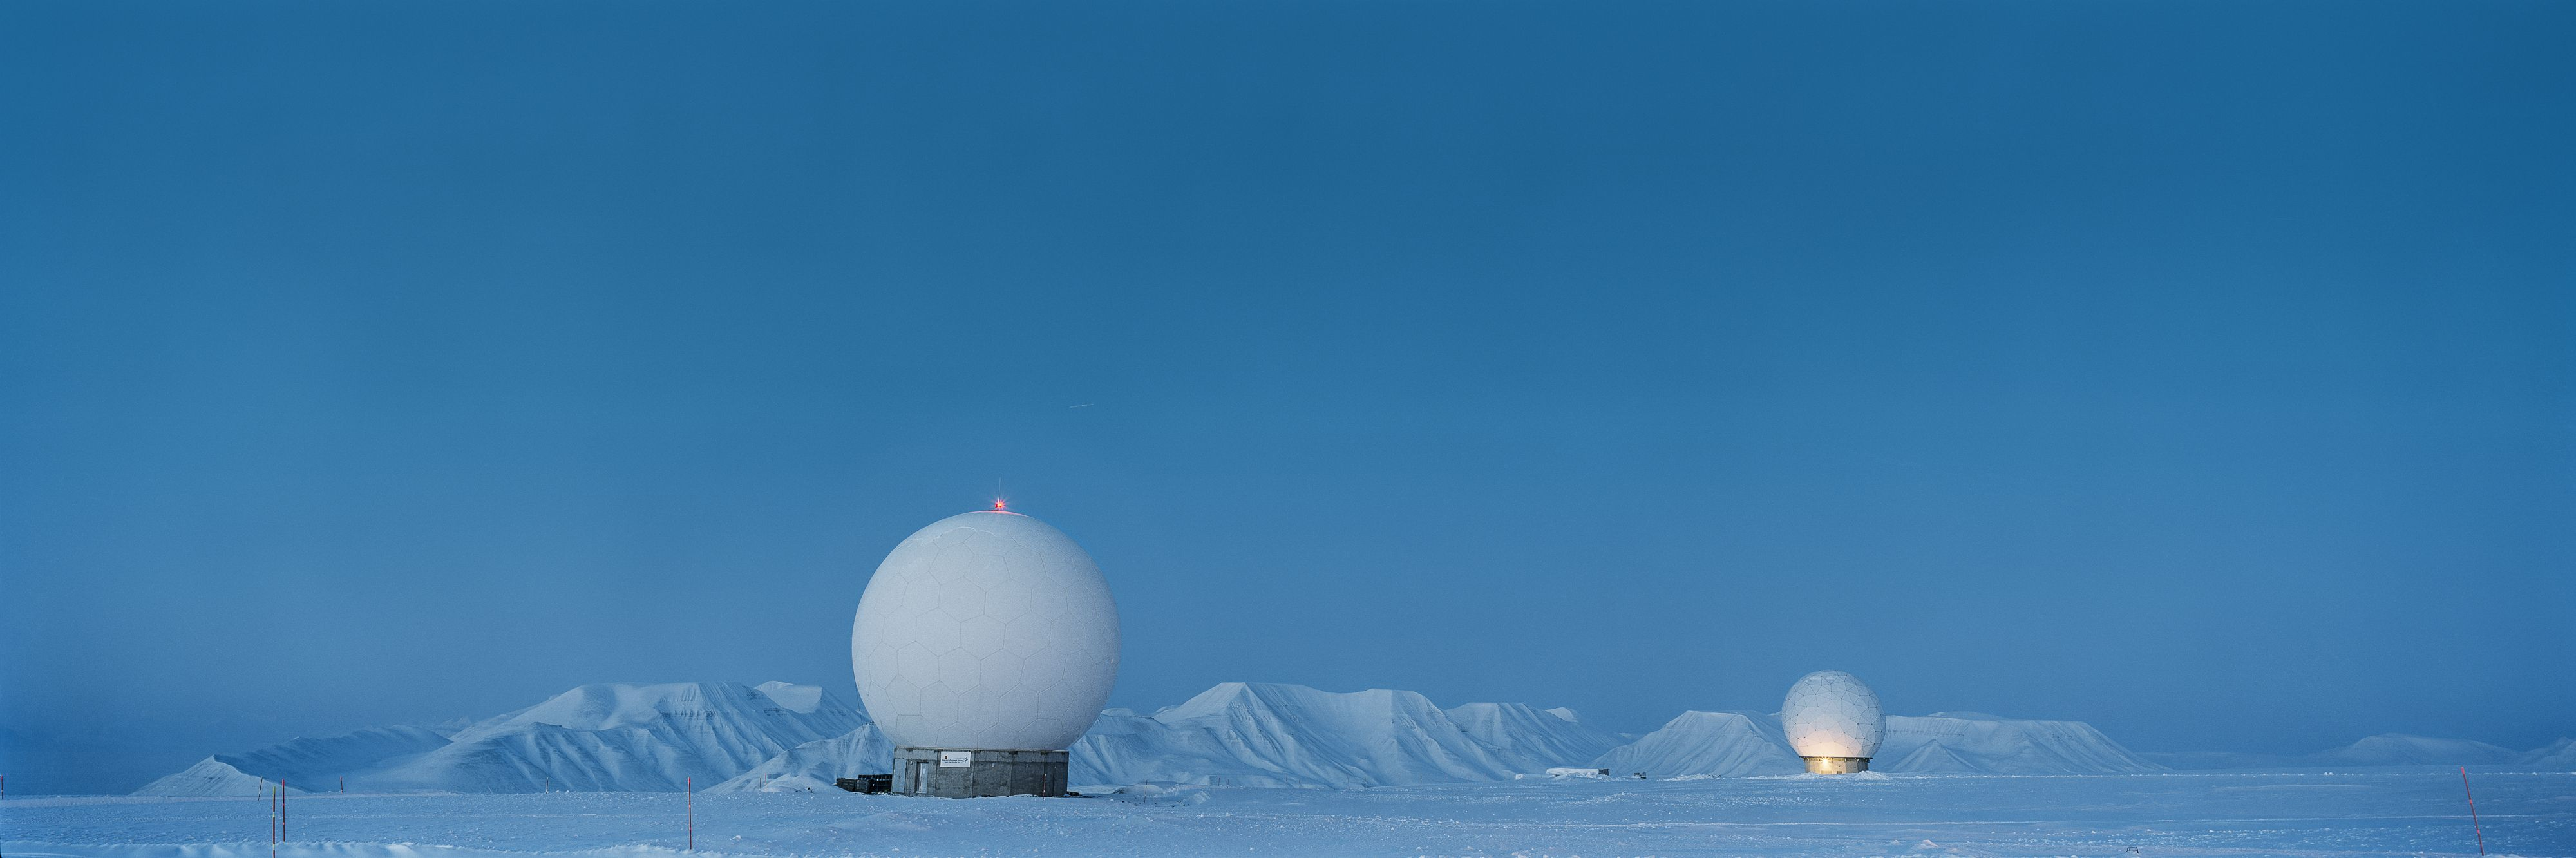 Spheres in moonlight, Arctic Technology, Spitsbergen - Christian Houge - Photographie contemporaine